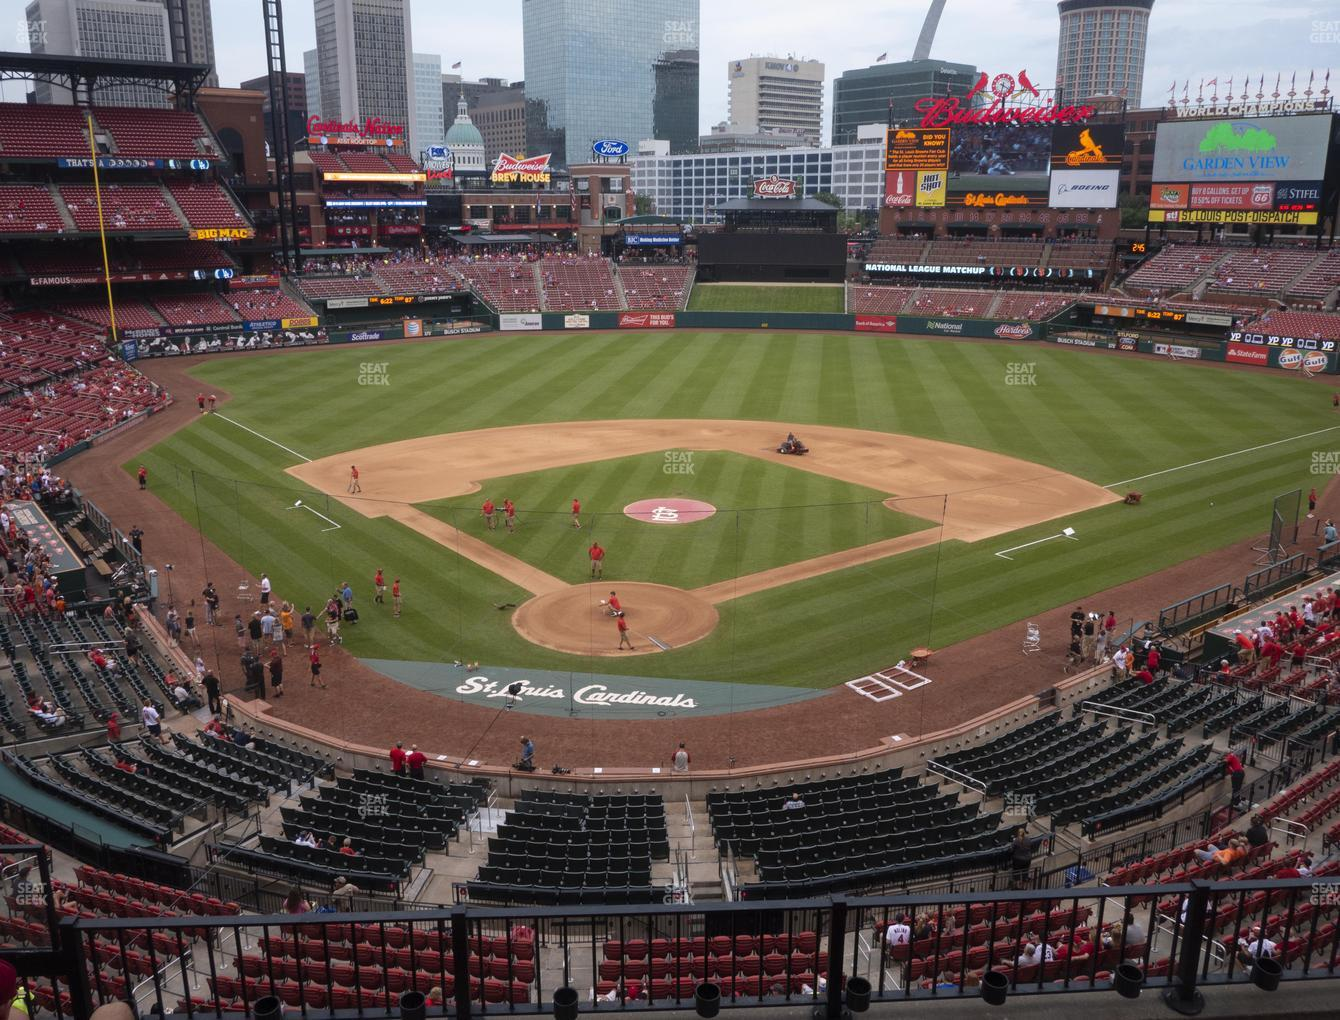 St. Louis Cardinals at Busch Stadium Home Redbird Club 249 View